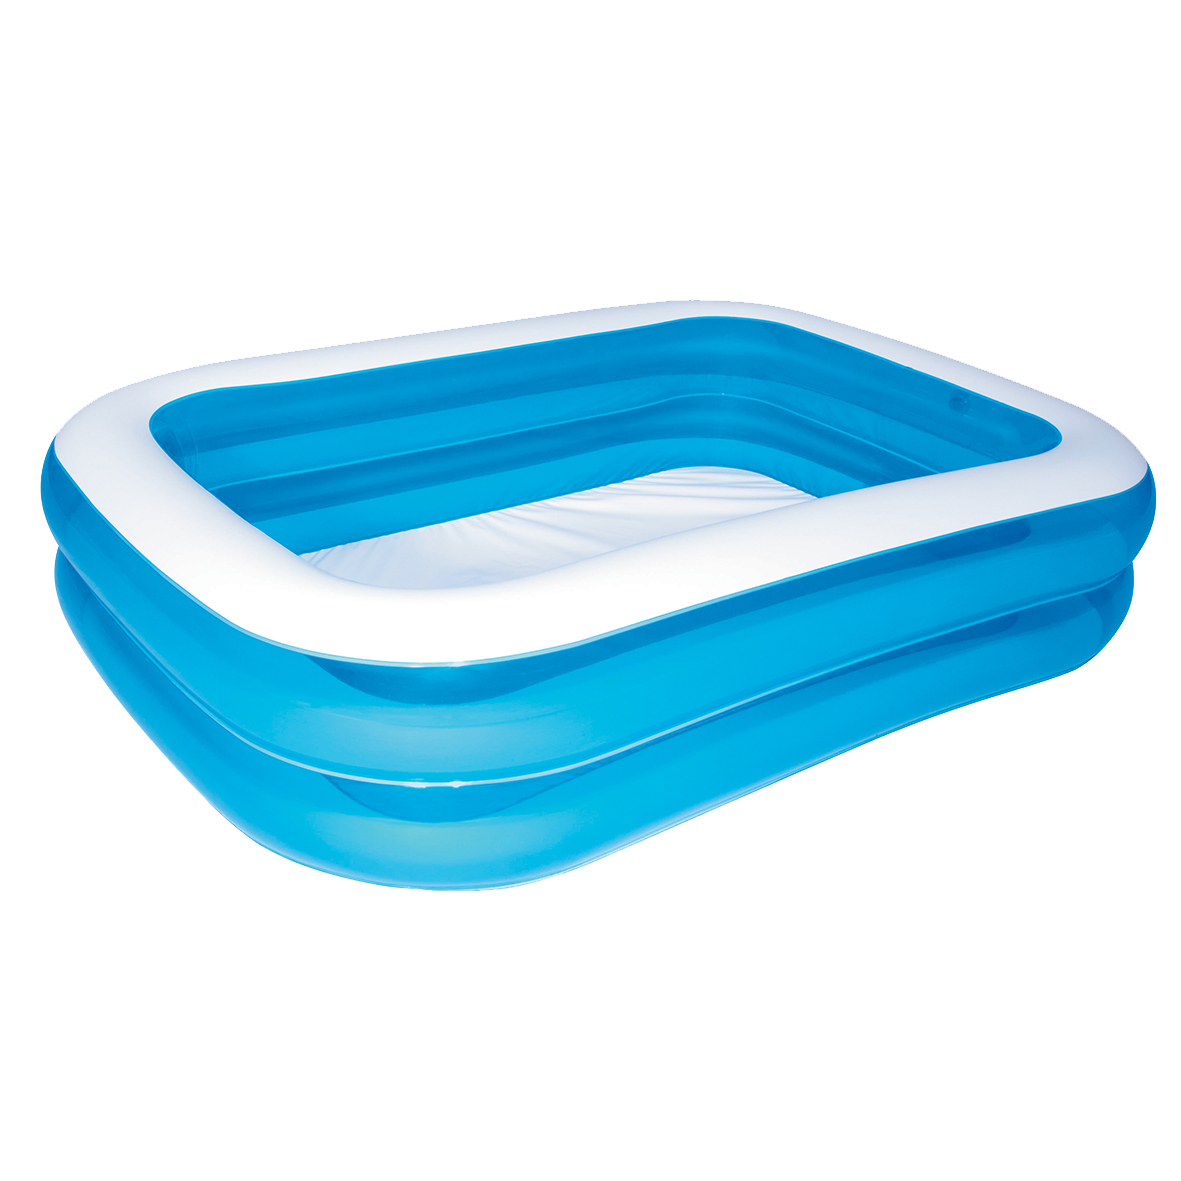 bestway-201-x-150-x-51cm-blue-rectangular-family-pool-code-54005